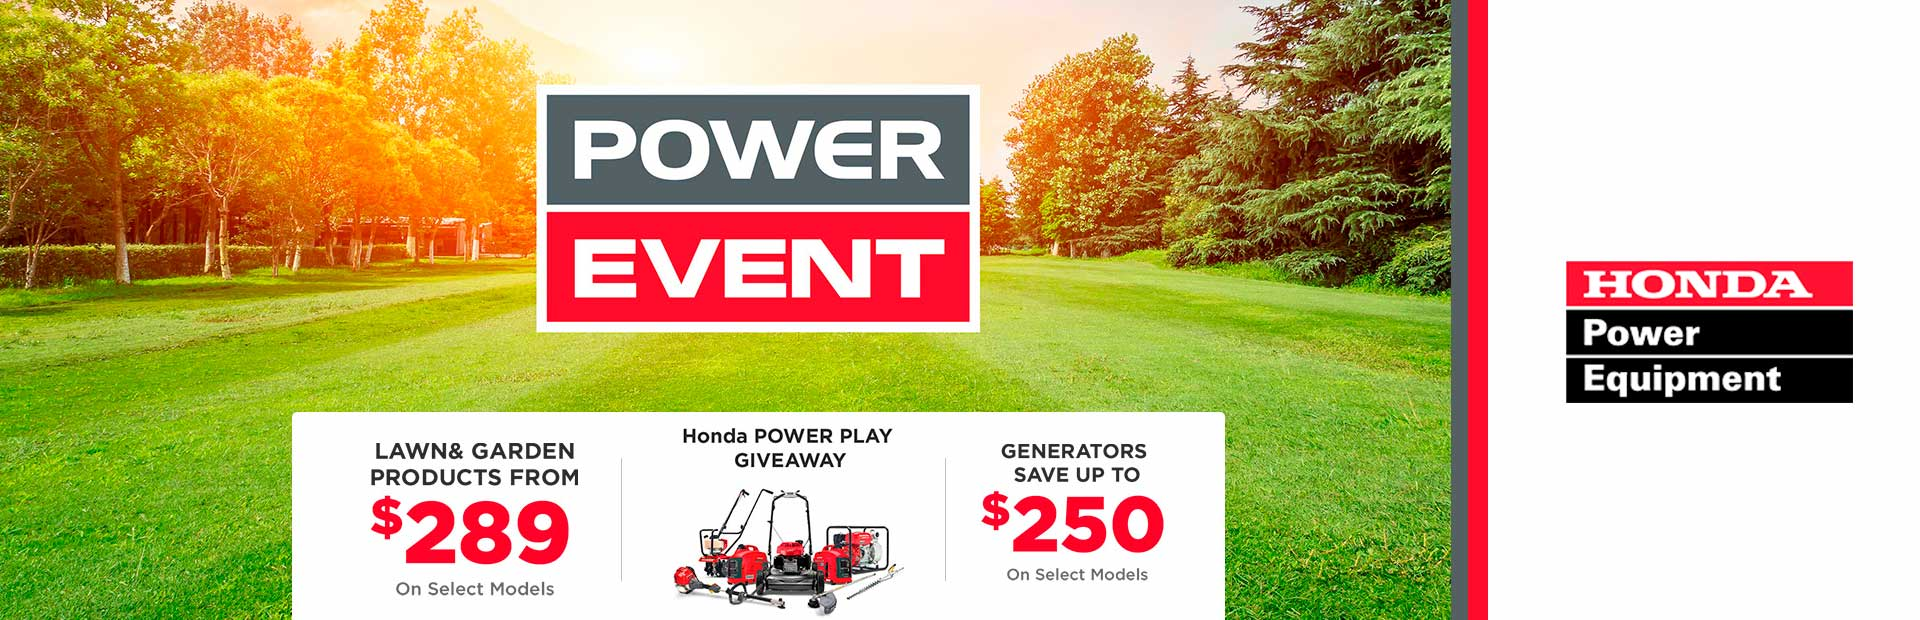 Honda Power Equipment: Honda Power Play Giveaway